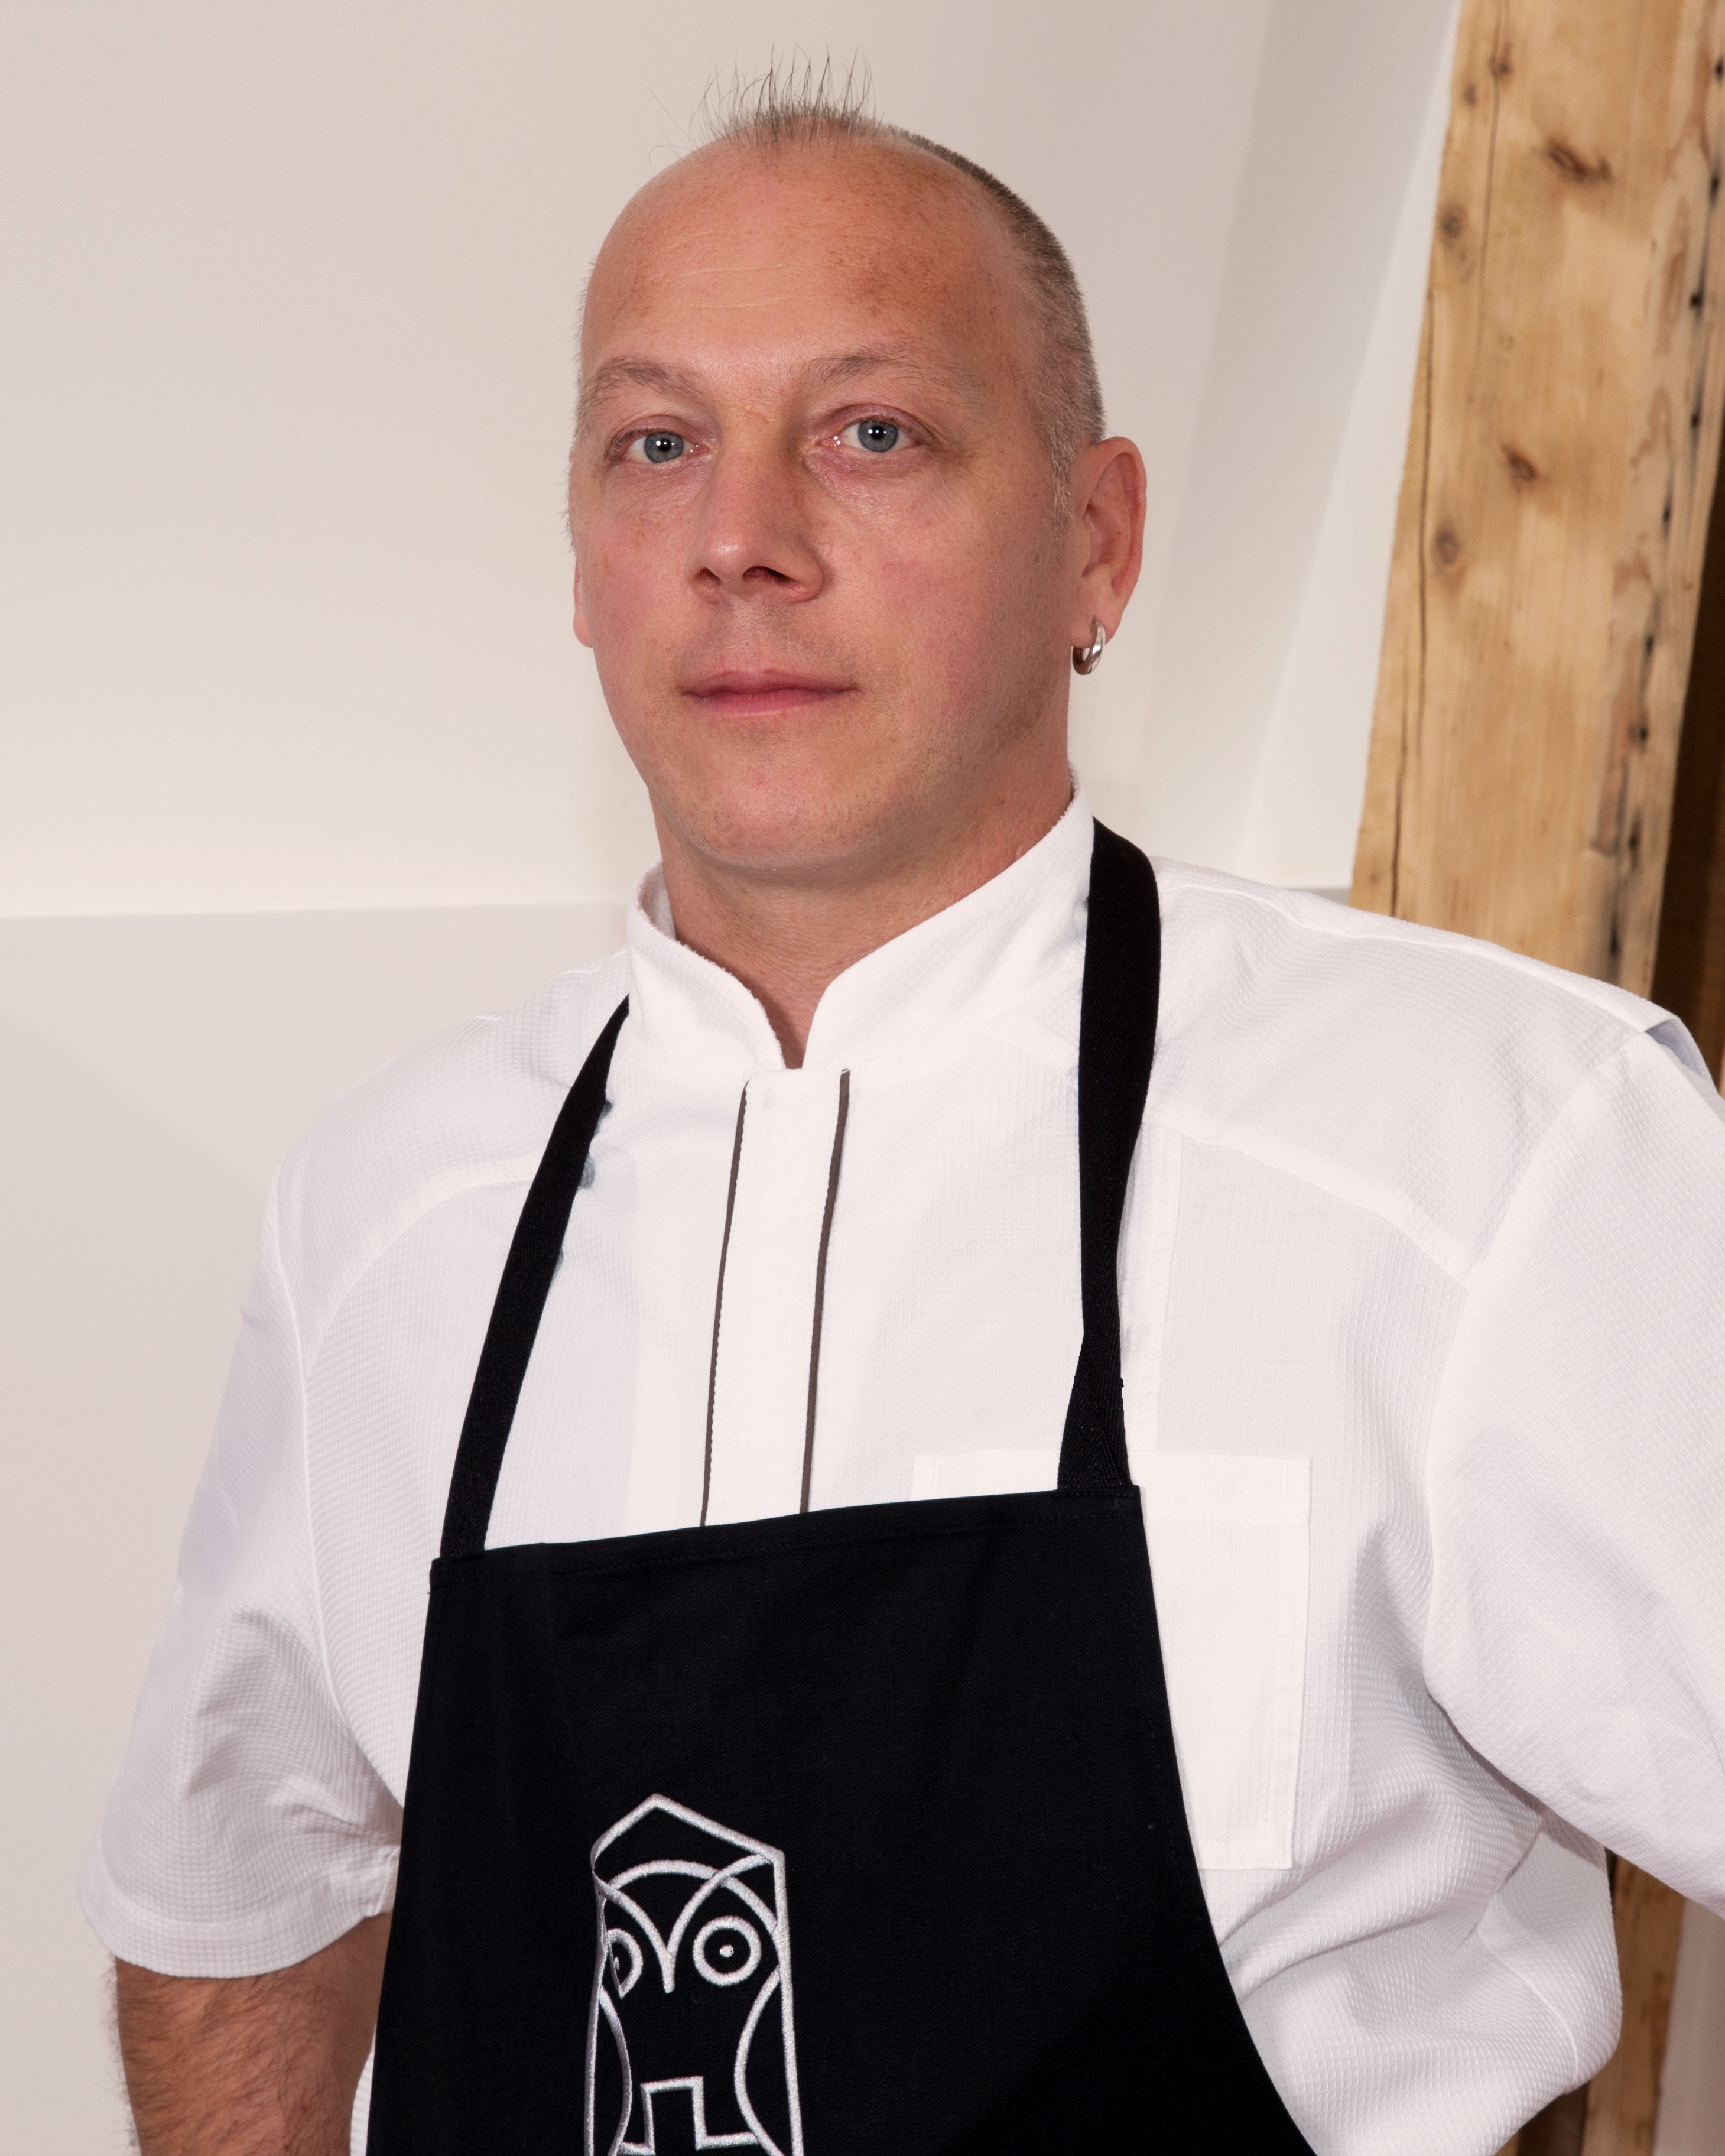 Christophe, aide cuisine